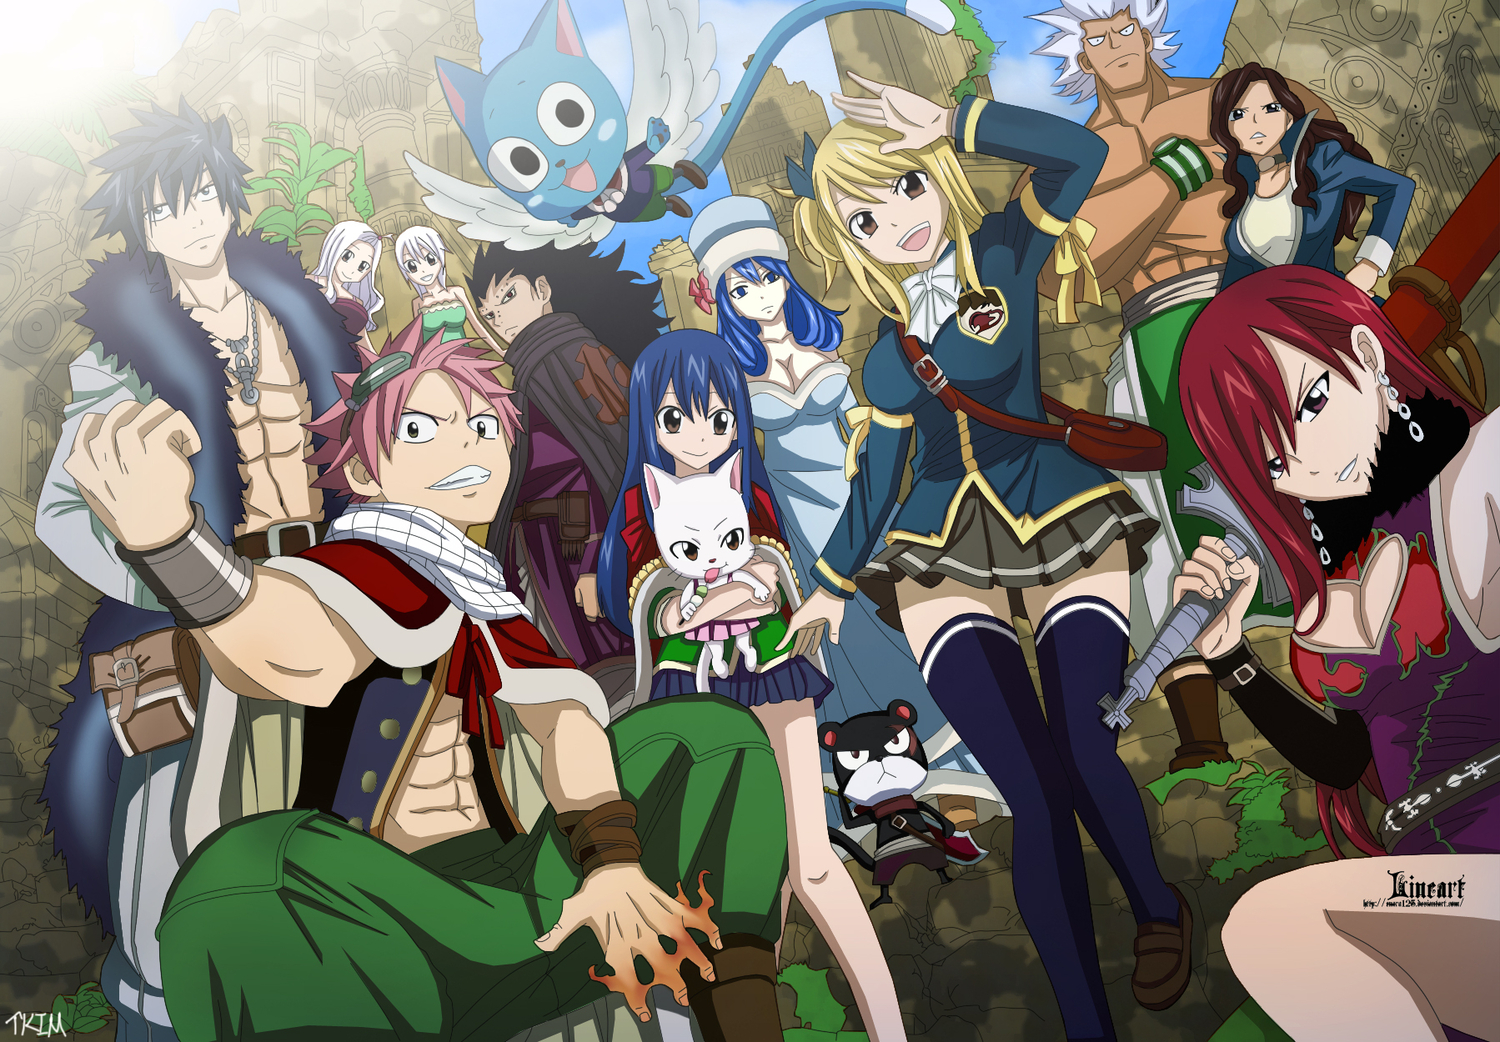 Anime Fairy Tail Wallpaper HD Nice | Coisas para usar | Pinterest